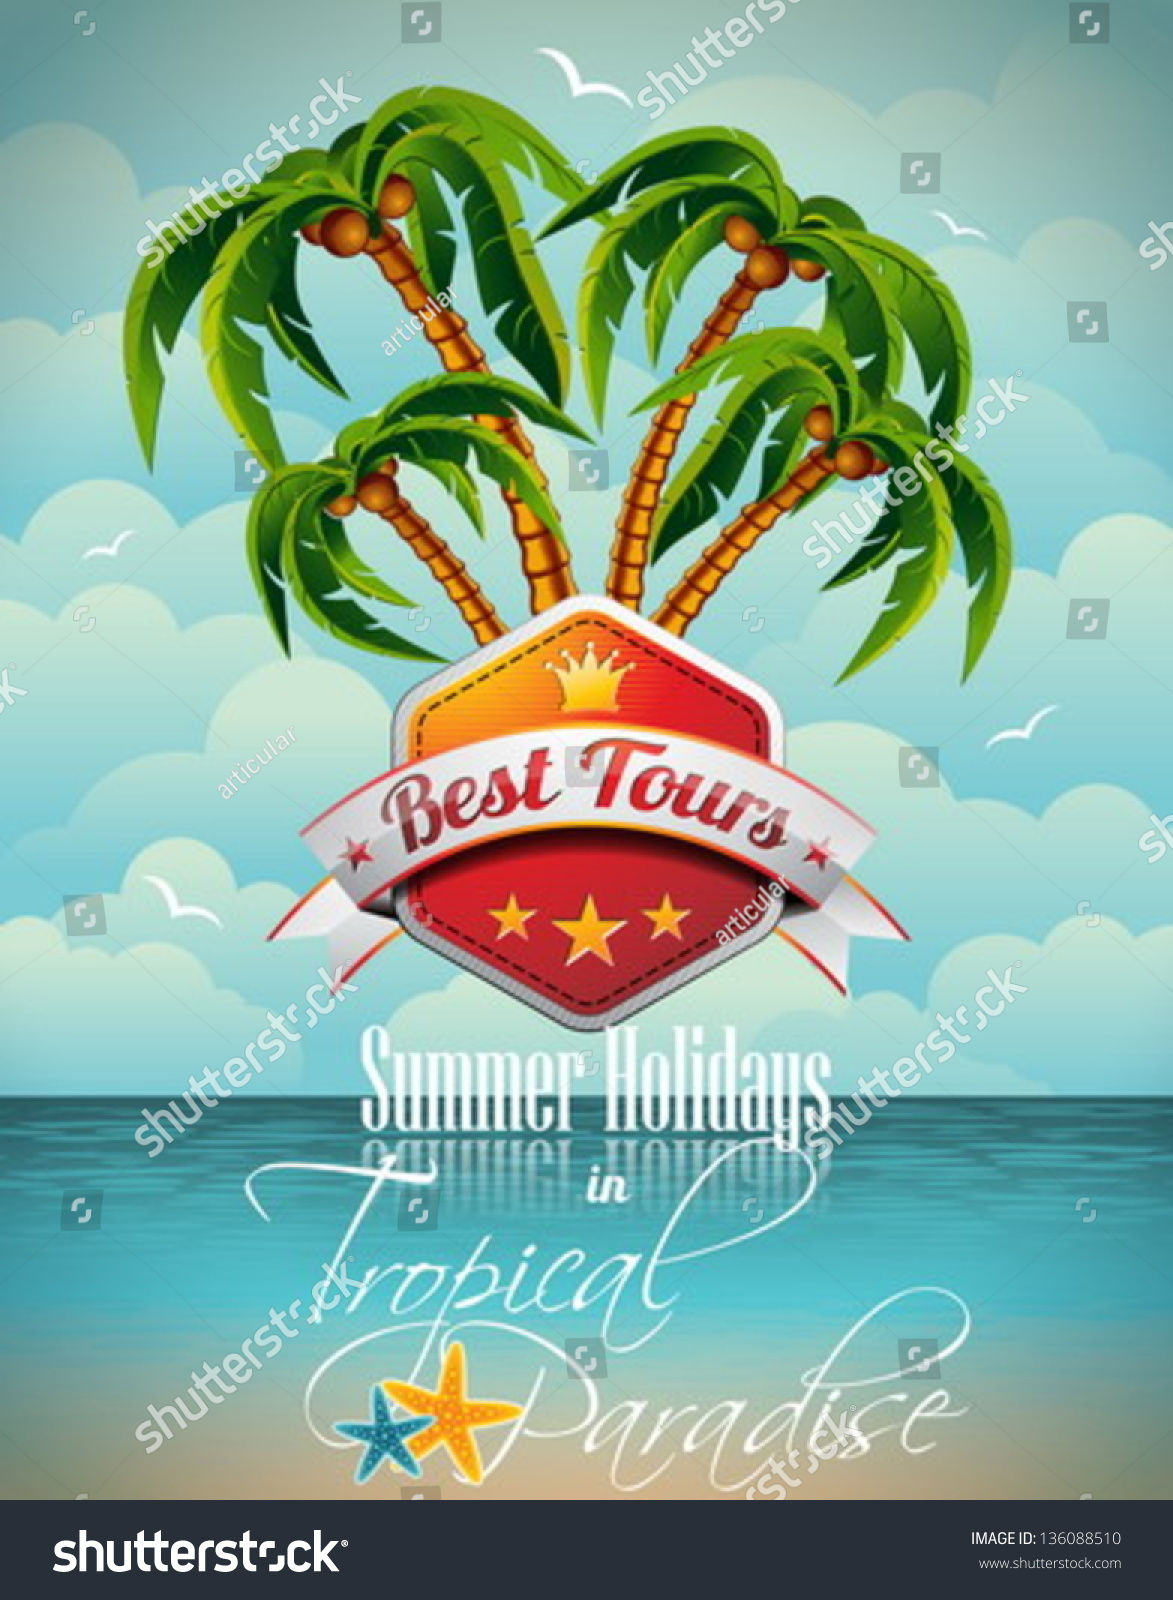 vector summer holiday flyer design palm stock vector  vector summer holiday flyer design palm trees and best tour banner on sea background